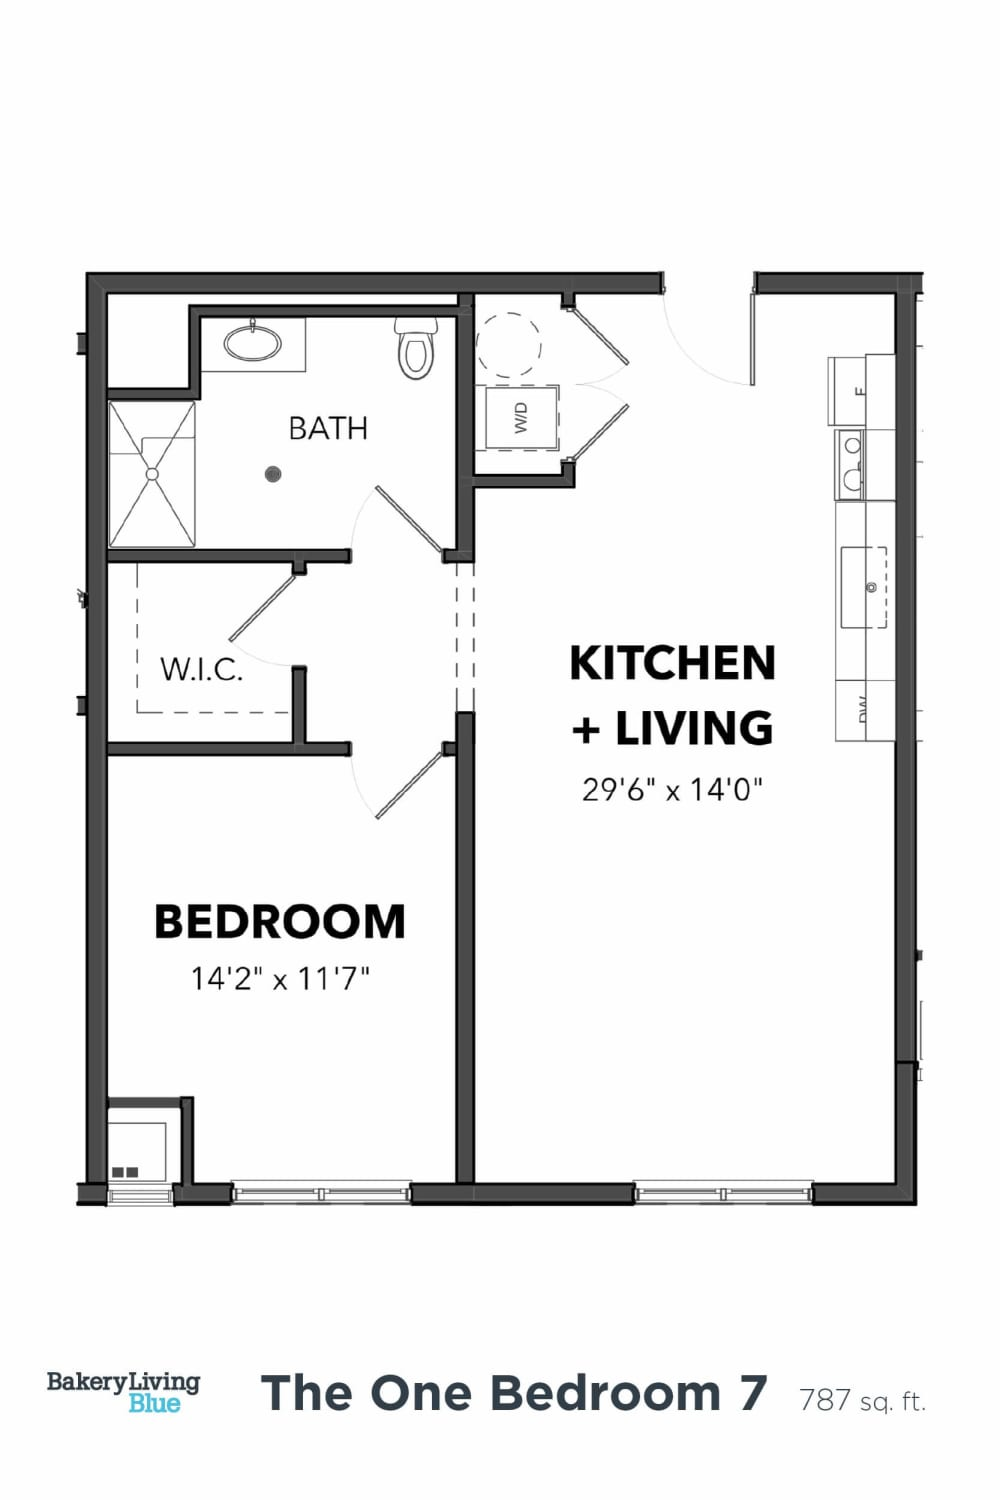 Bakery Living One Bedroom 7, apartments in Pittsburgh, Pennsylvania 15206